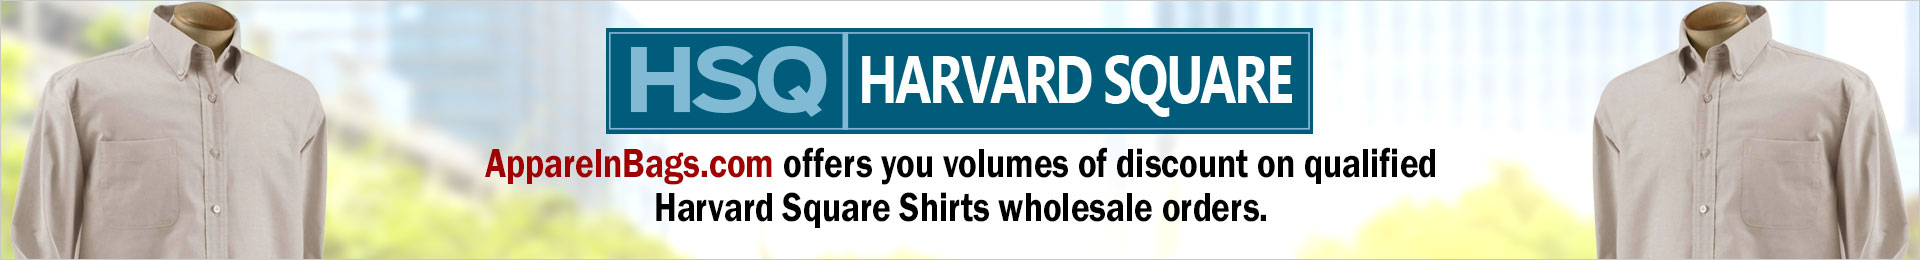 Harvard Square Shirts